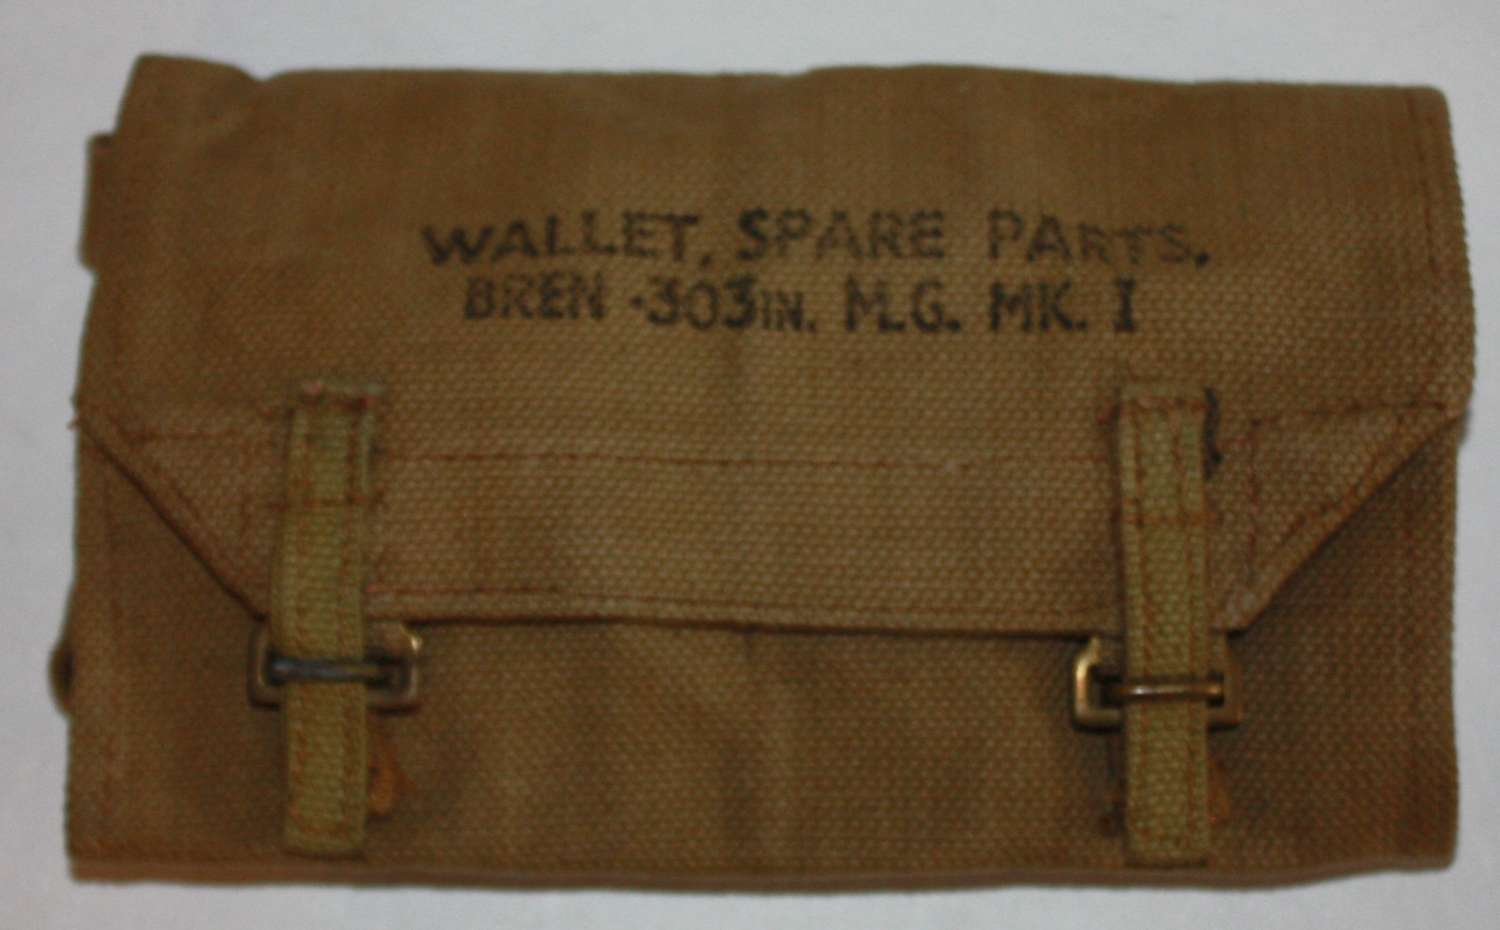 A MINT 1945 DATED BREN SPARE PARTS / CLEANING KIT WALLET